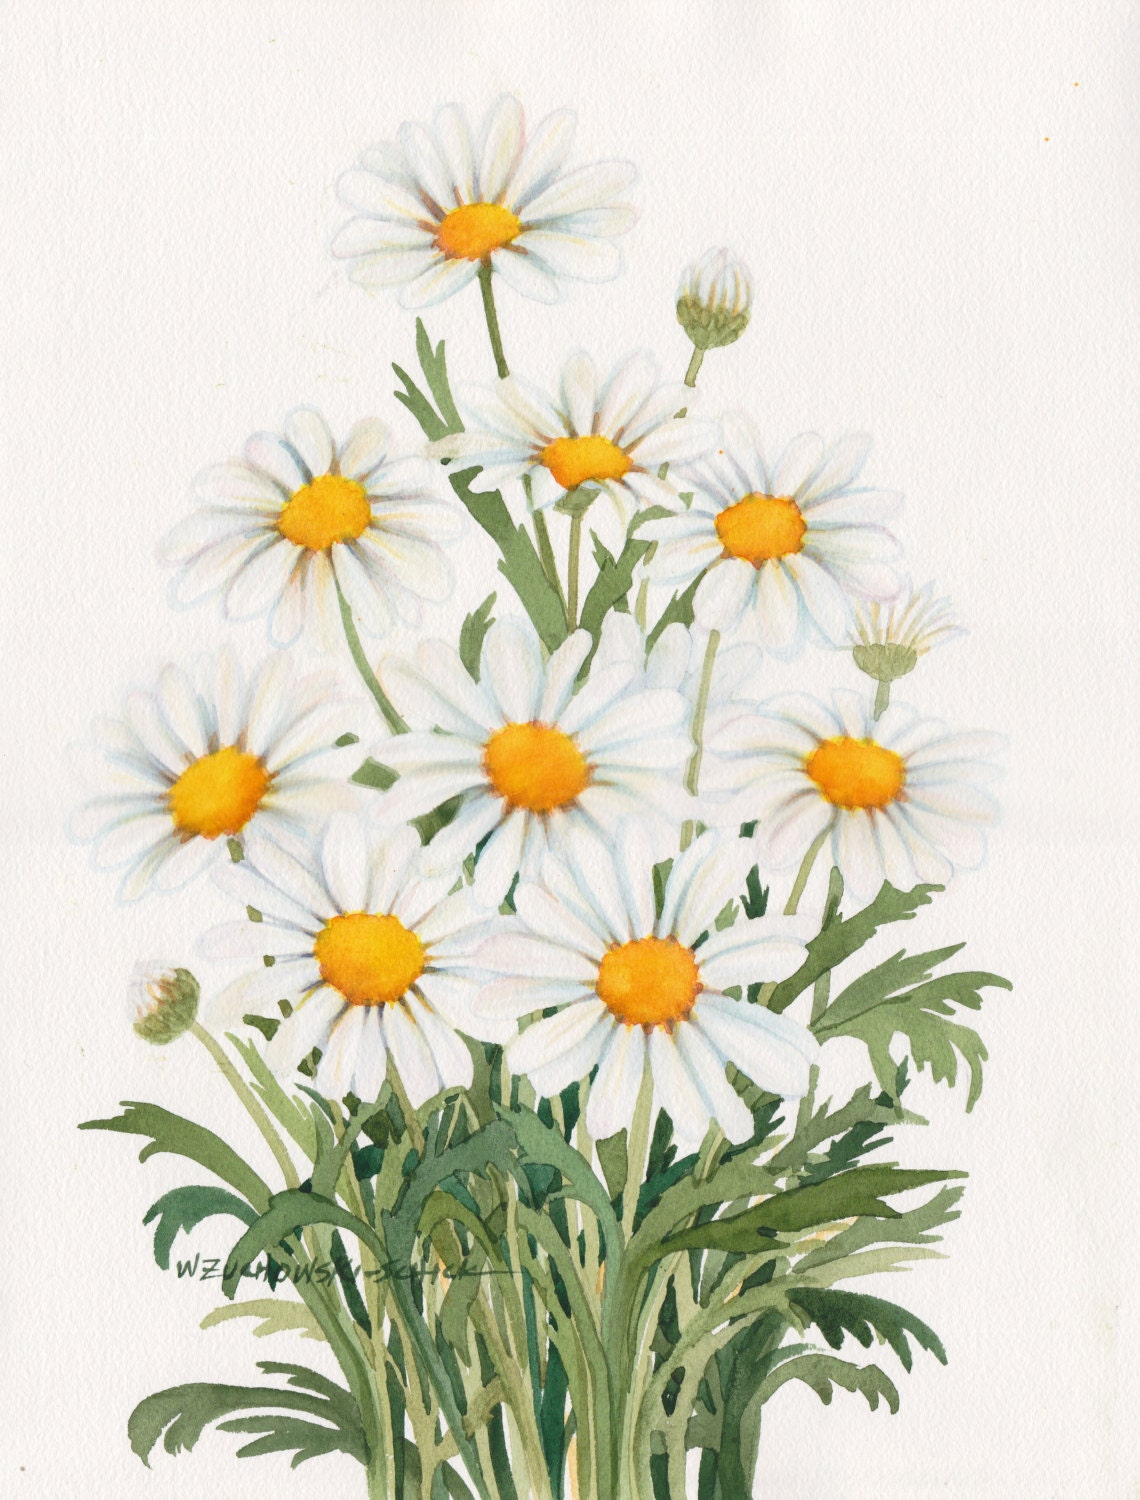 White Daisies Original Watercolor Painting 11x15 By